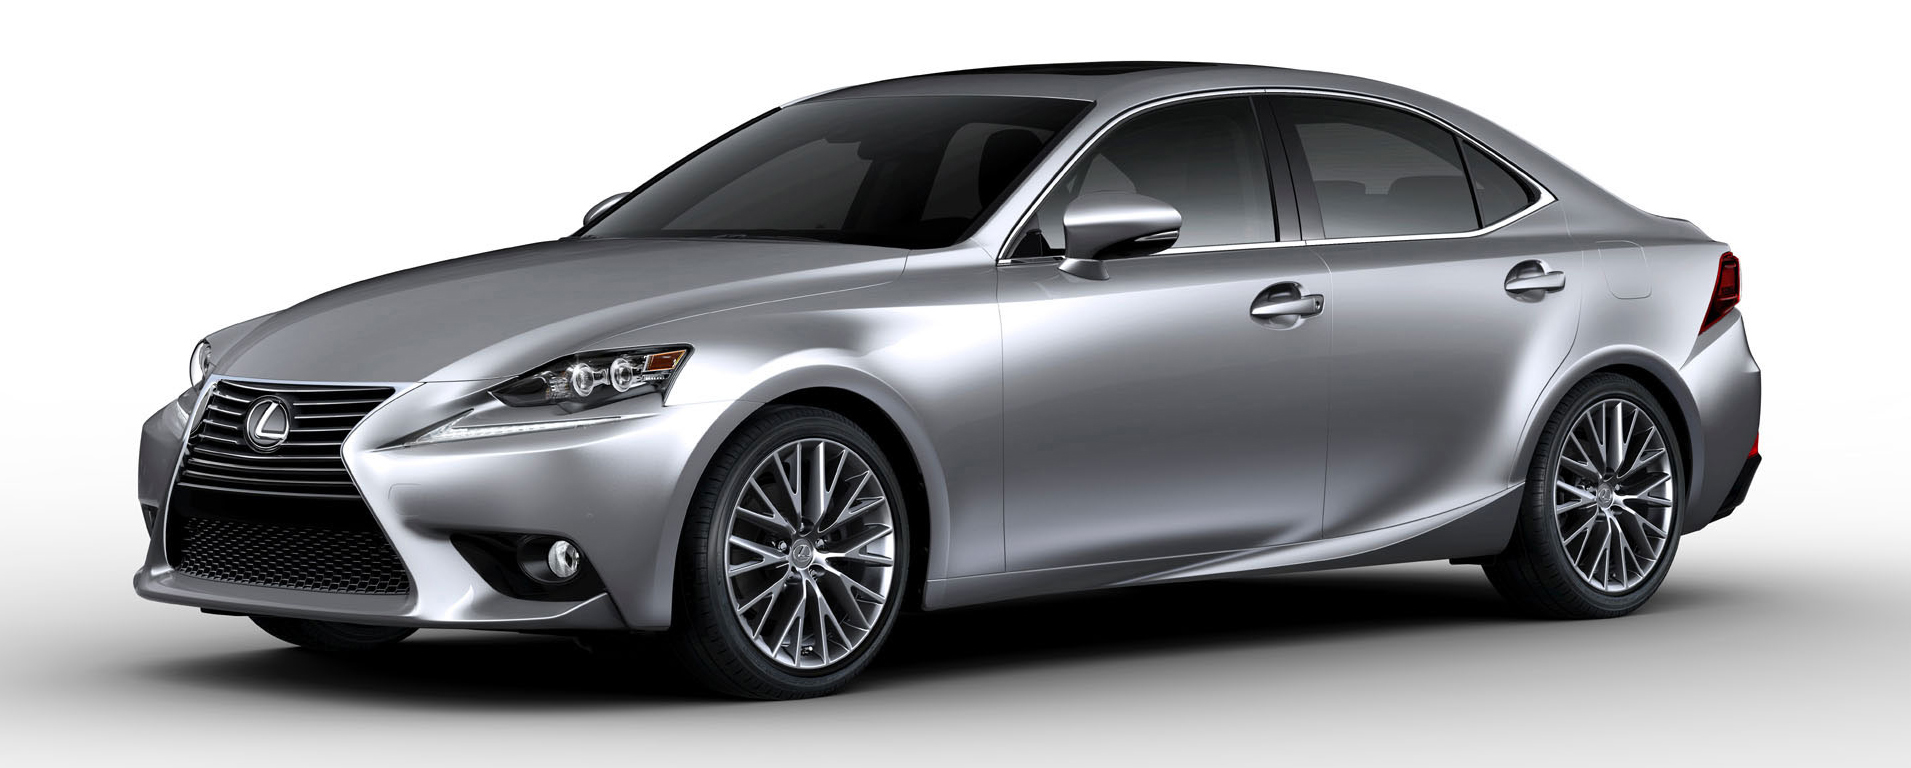 lexus ideas review sweet roja is autoblog awd sport extravagant f has my arrived ultra red horsepower white specs lease baby